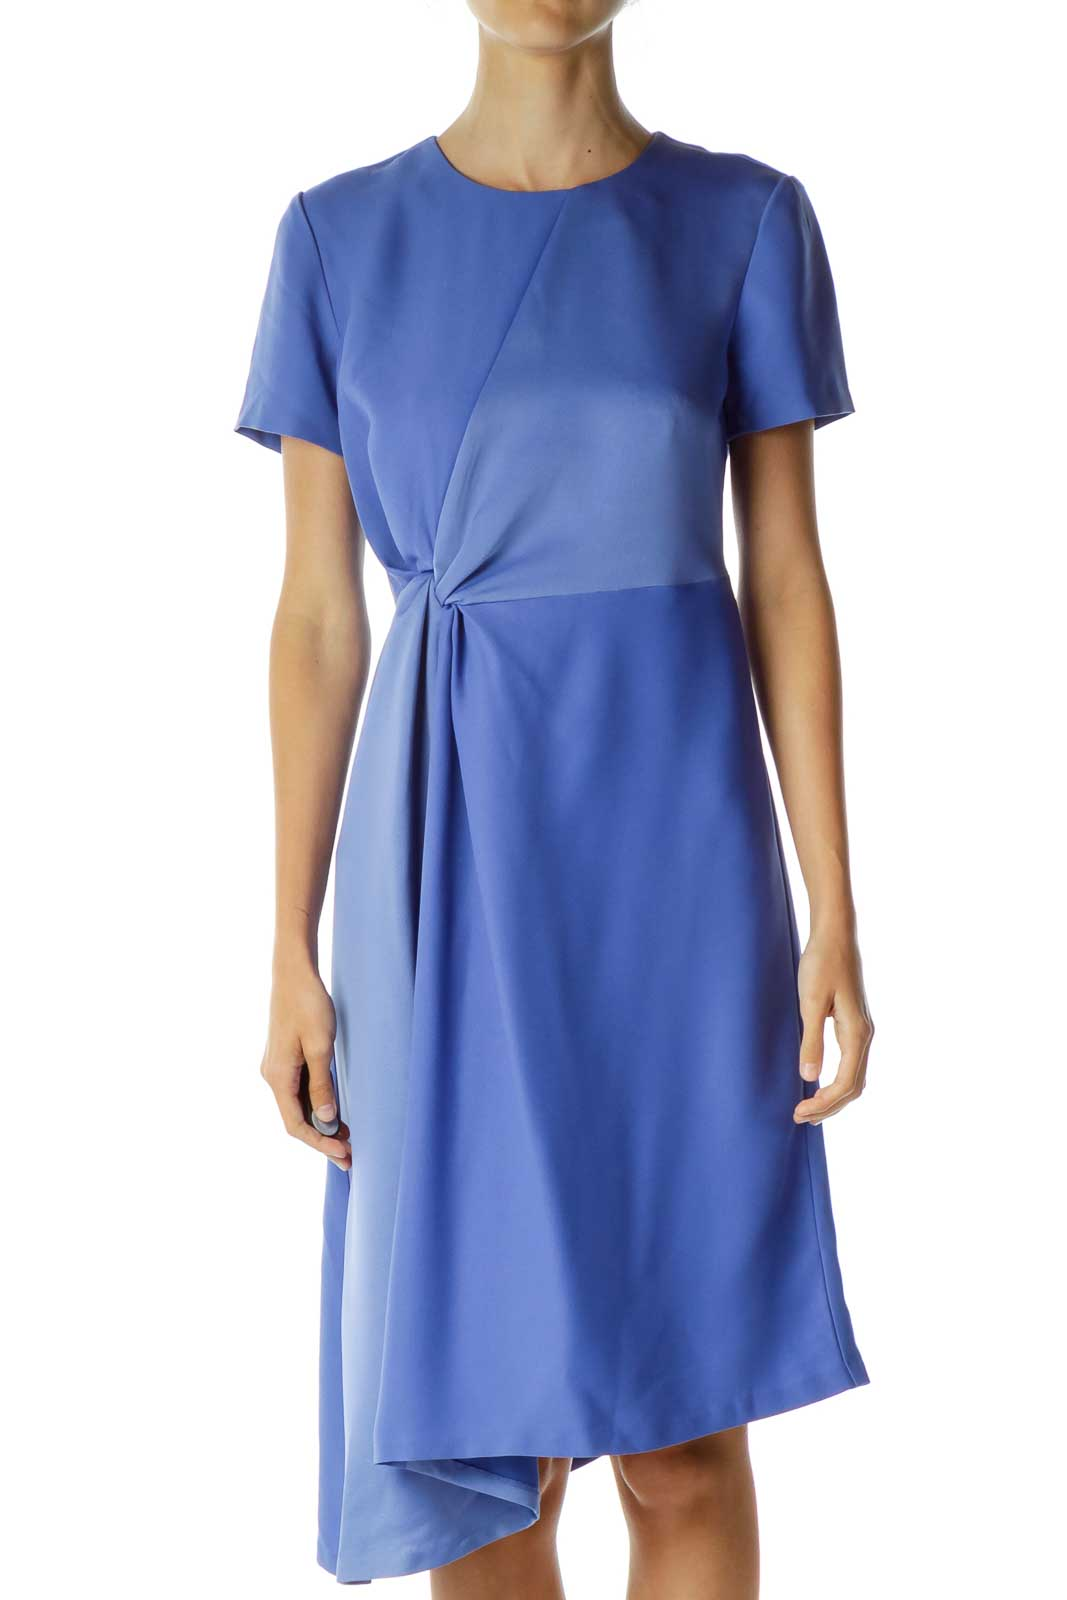 Blue Scrunched Midi Work Dress